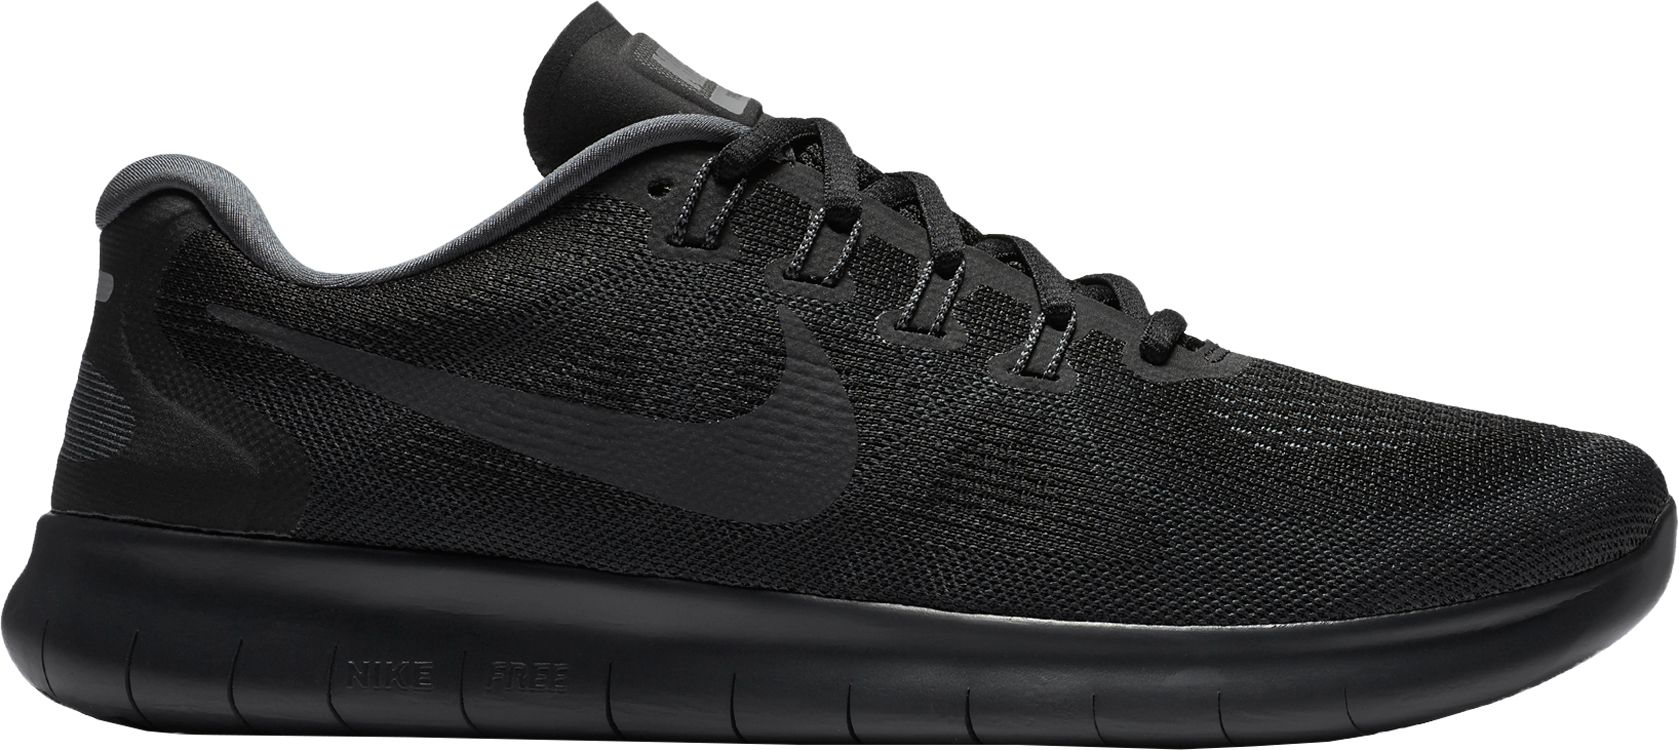 Nike Free Rn 2017 : Buy Nike Shoes & Sneakers ...